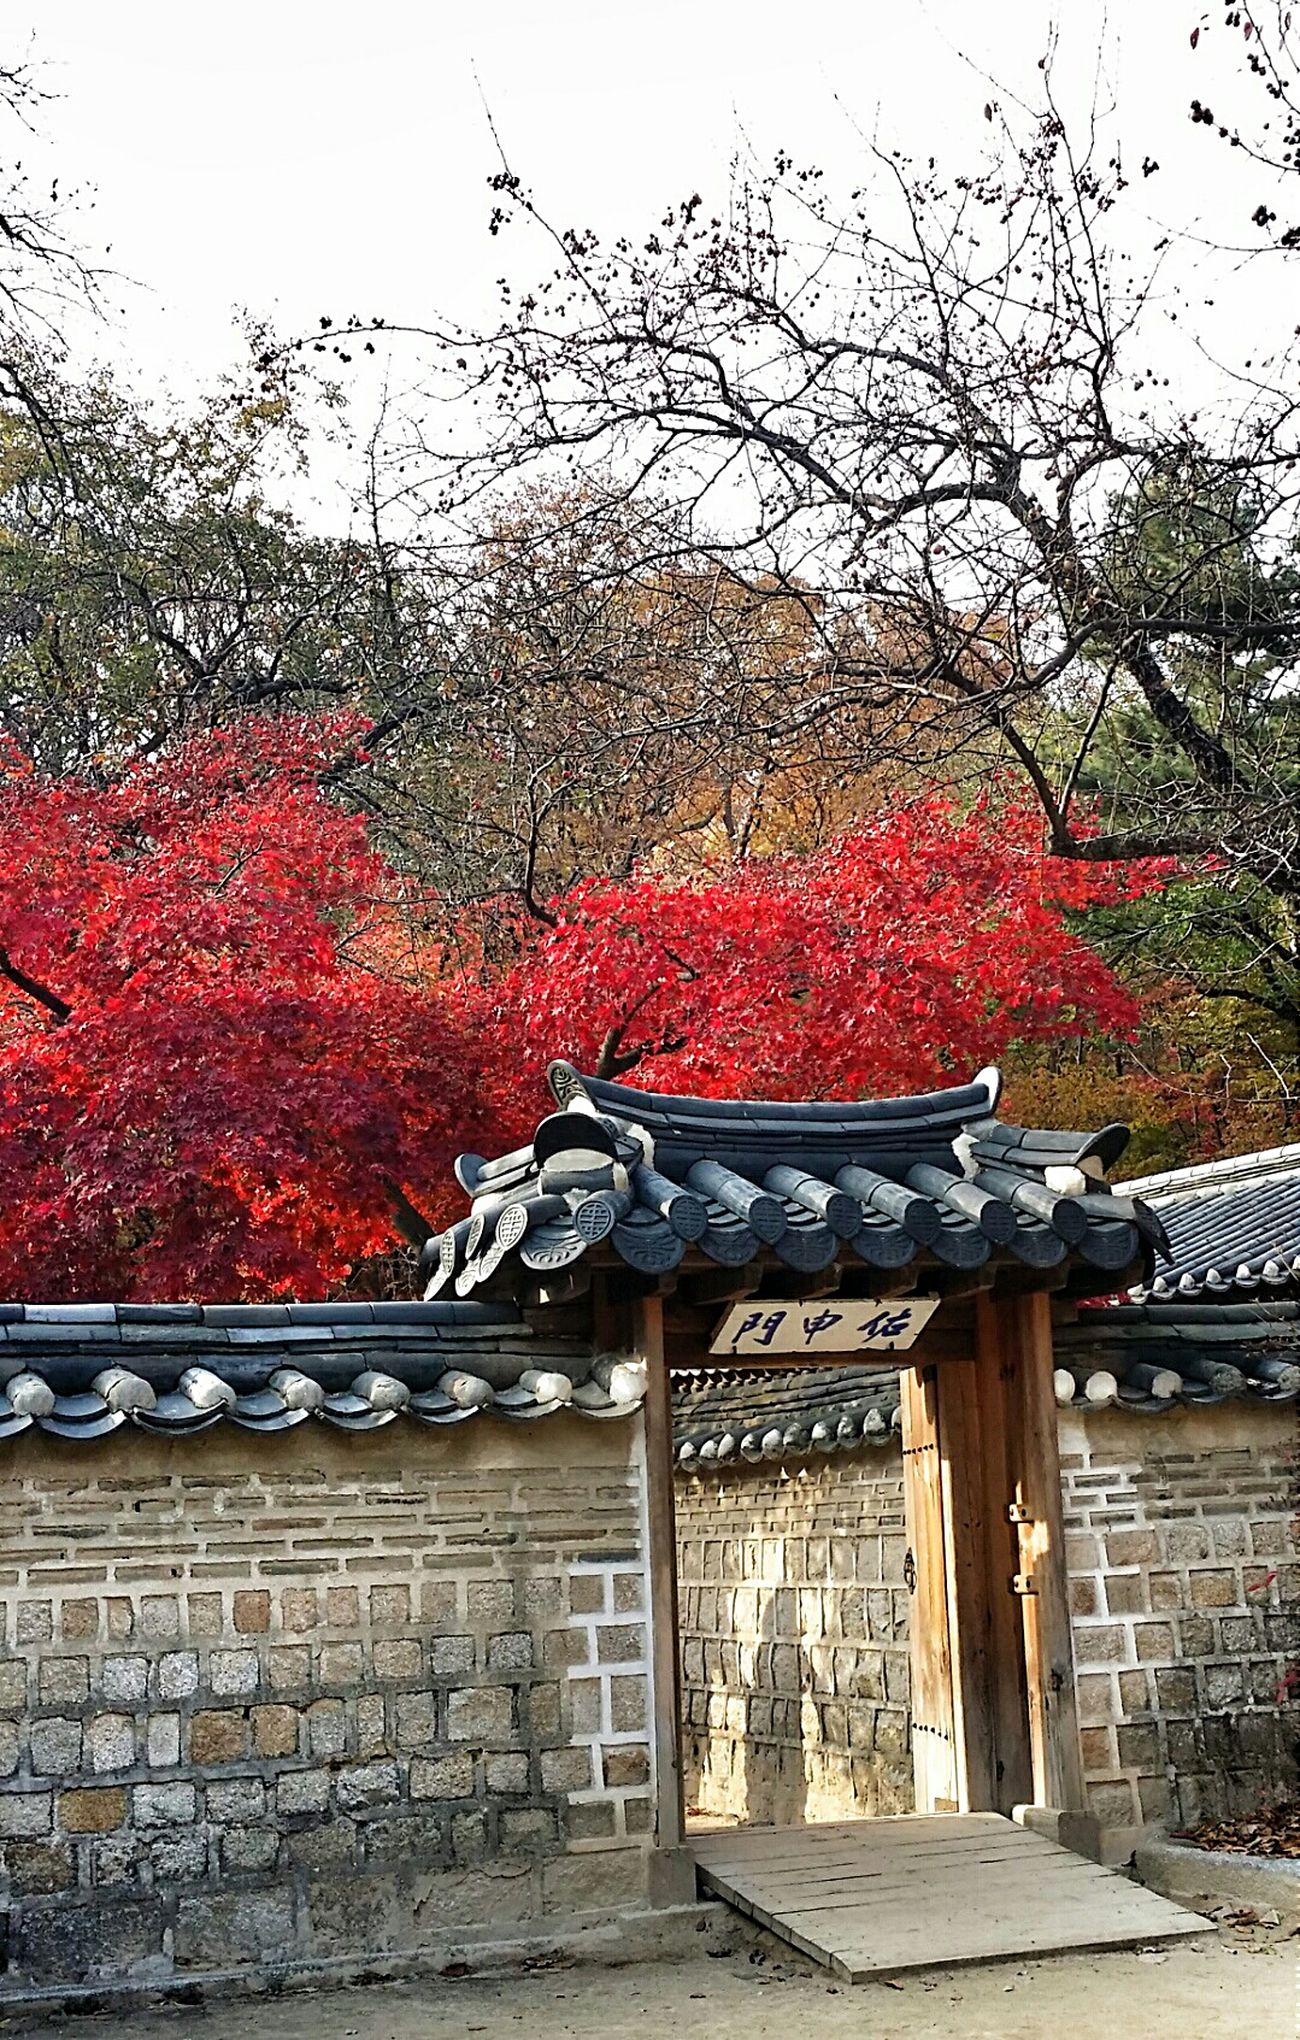 Autumn Colors Autumn2014 Seoulautumn2014 Changdeokgung Palace Seoul Korea Travel Photography Beautifulkorea